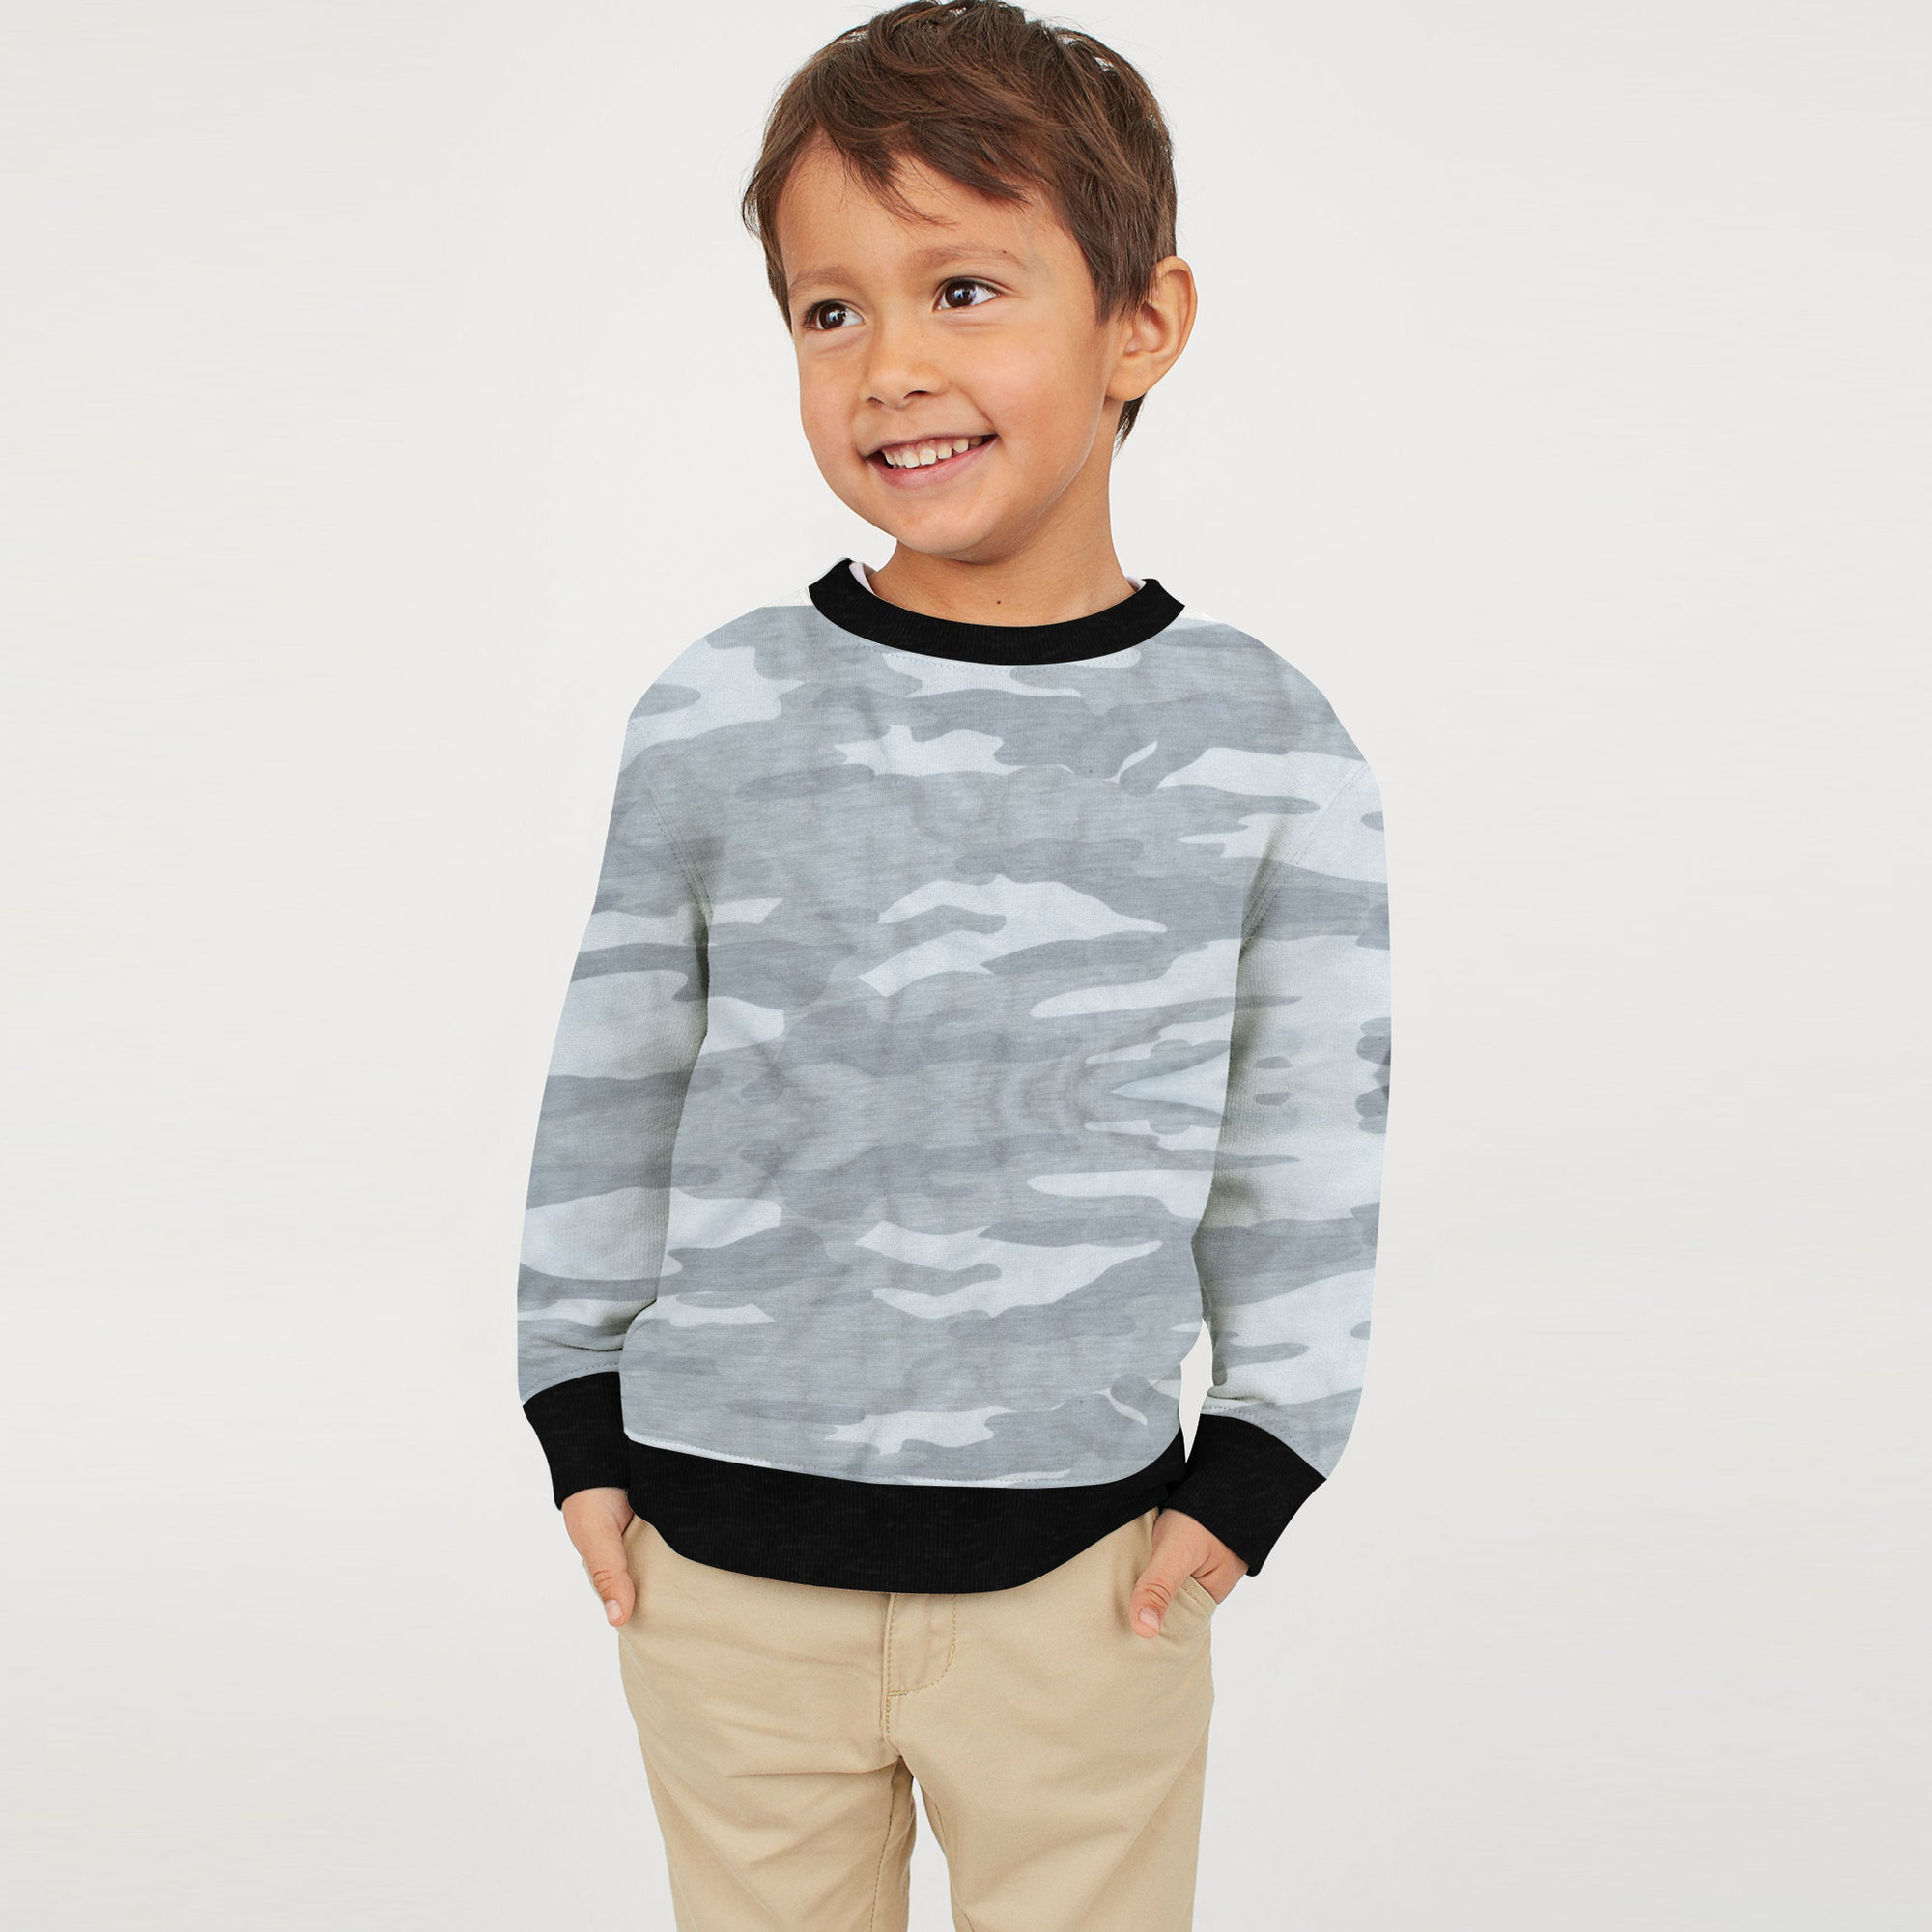 2e2c7519 Tommy Hilfiger Crew Neck Fleece Sweatshirt For Kids-Camouflage-BE7938 -  BrandsEgo